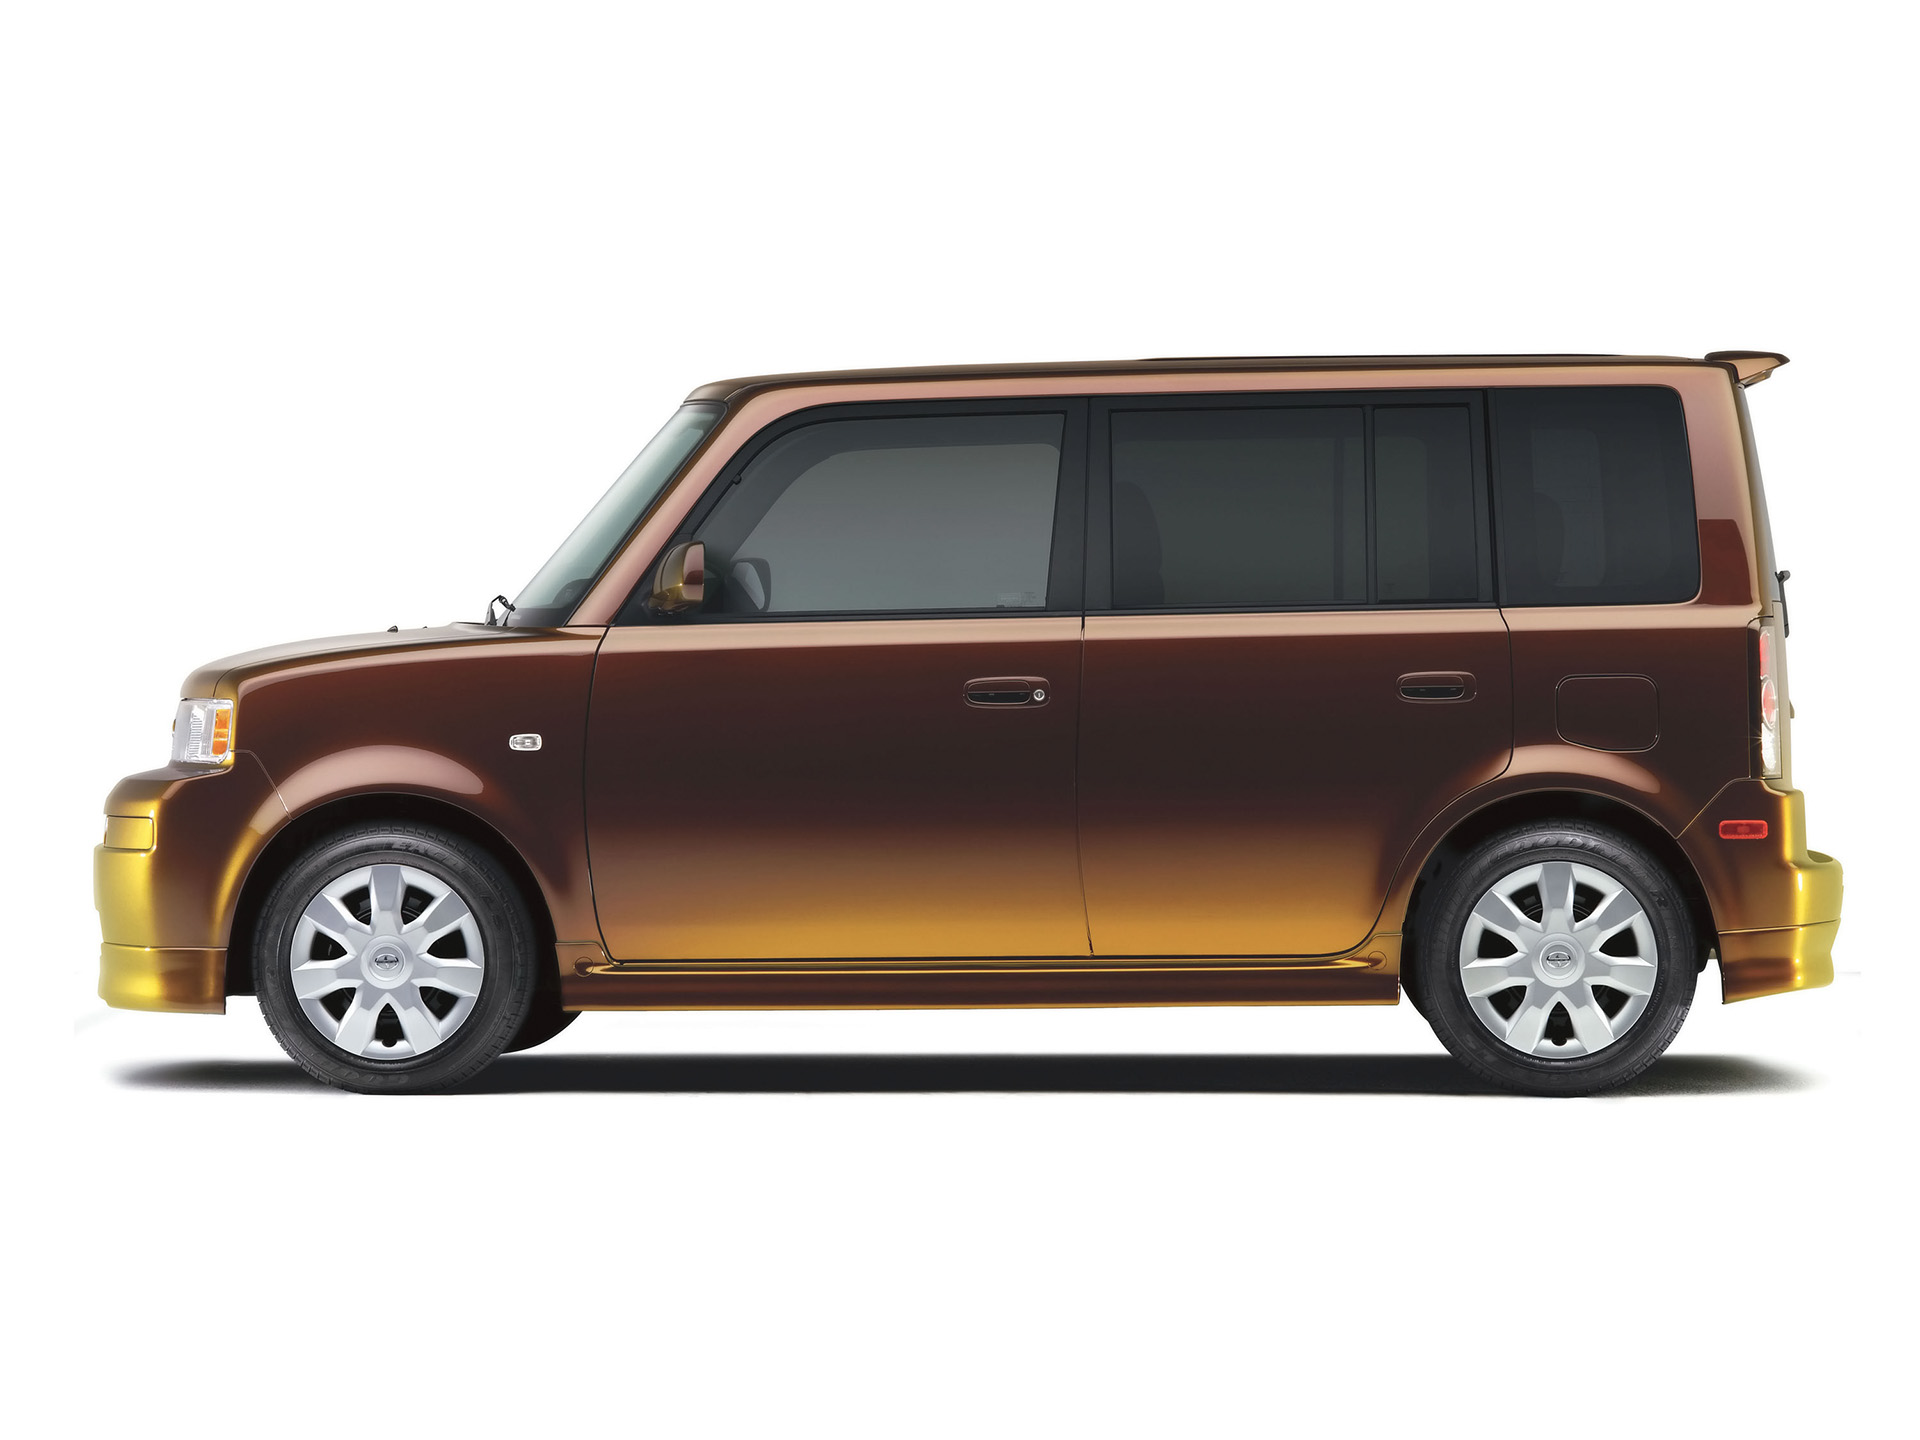 2006 scion xb release series 4 0 hd pictures. Black Bedroom Furniture Sets. Home Design Ideas